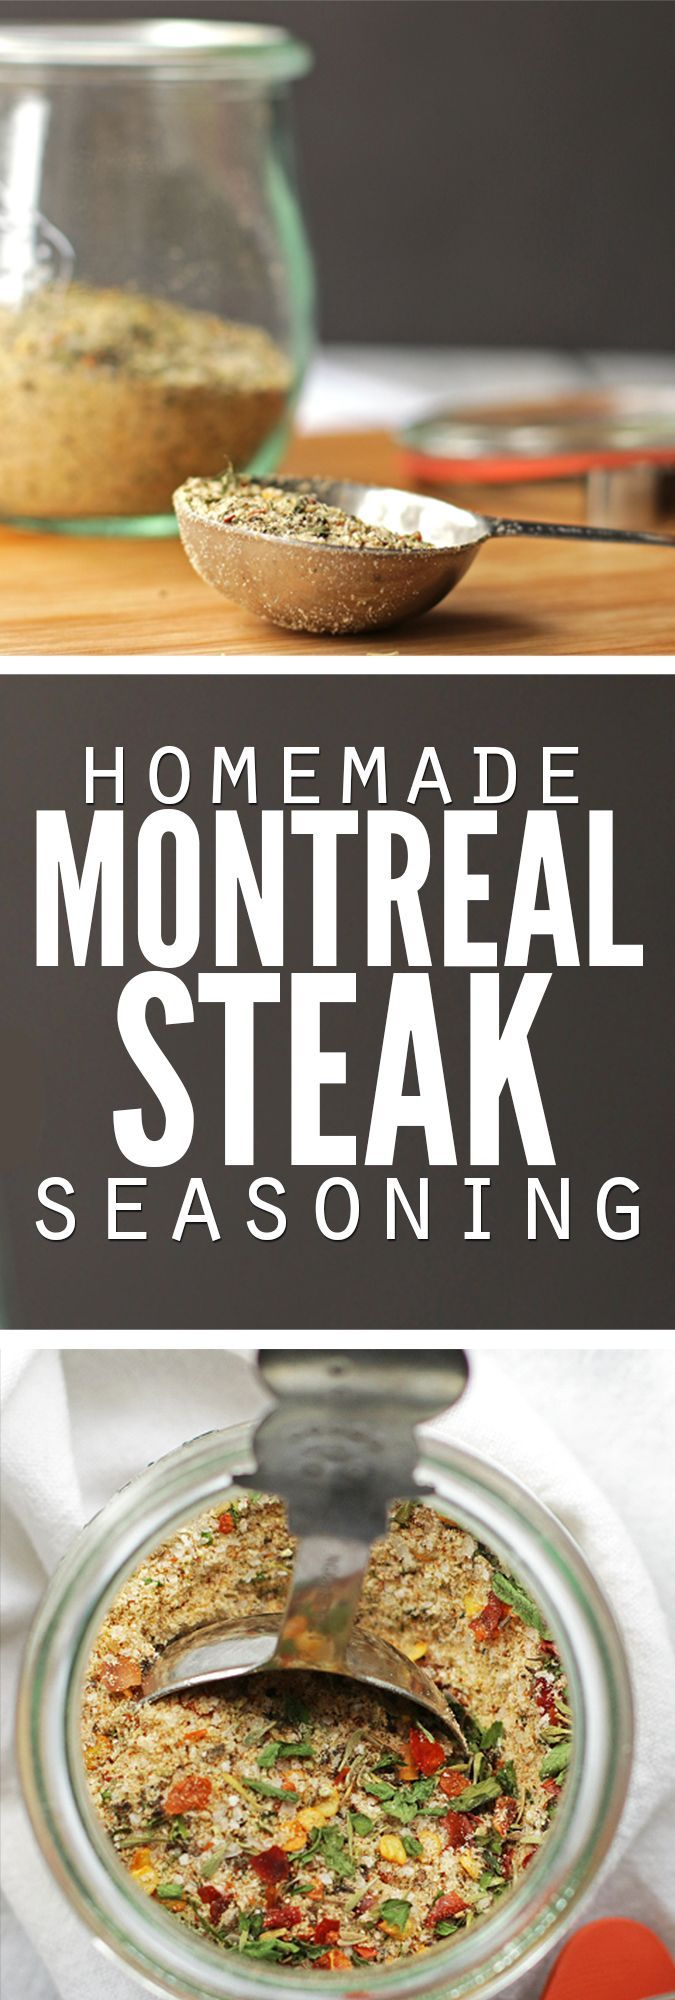 Easy recipe for homemade Montreal steak seasoning plus bonus homemade Montreal chicken seasoning, using spices you already have. Frugal, simple and delicious - it's our favorite spice for just about anything!